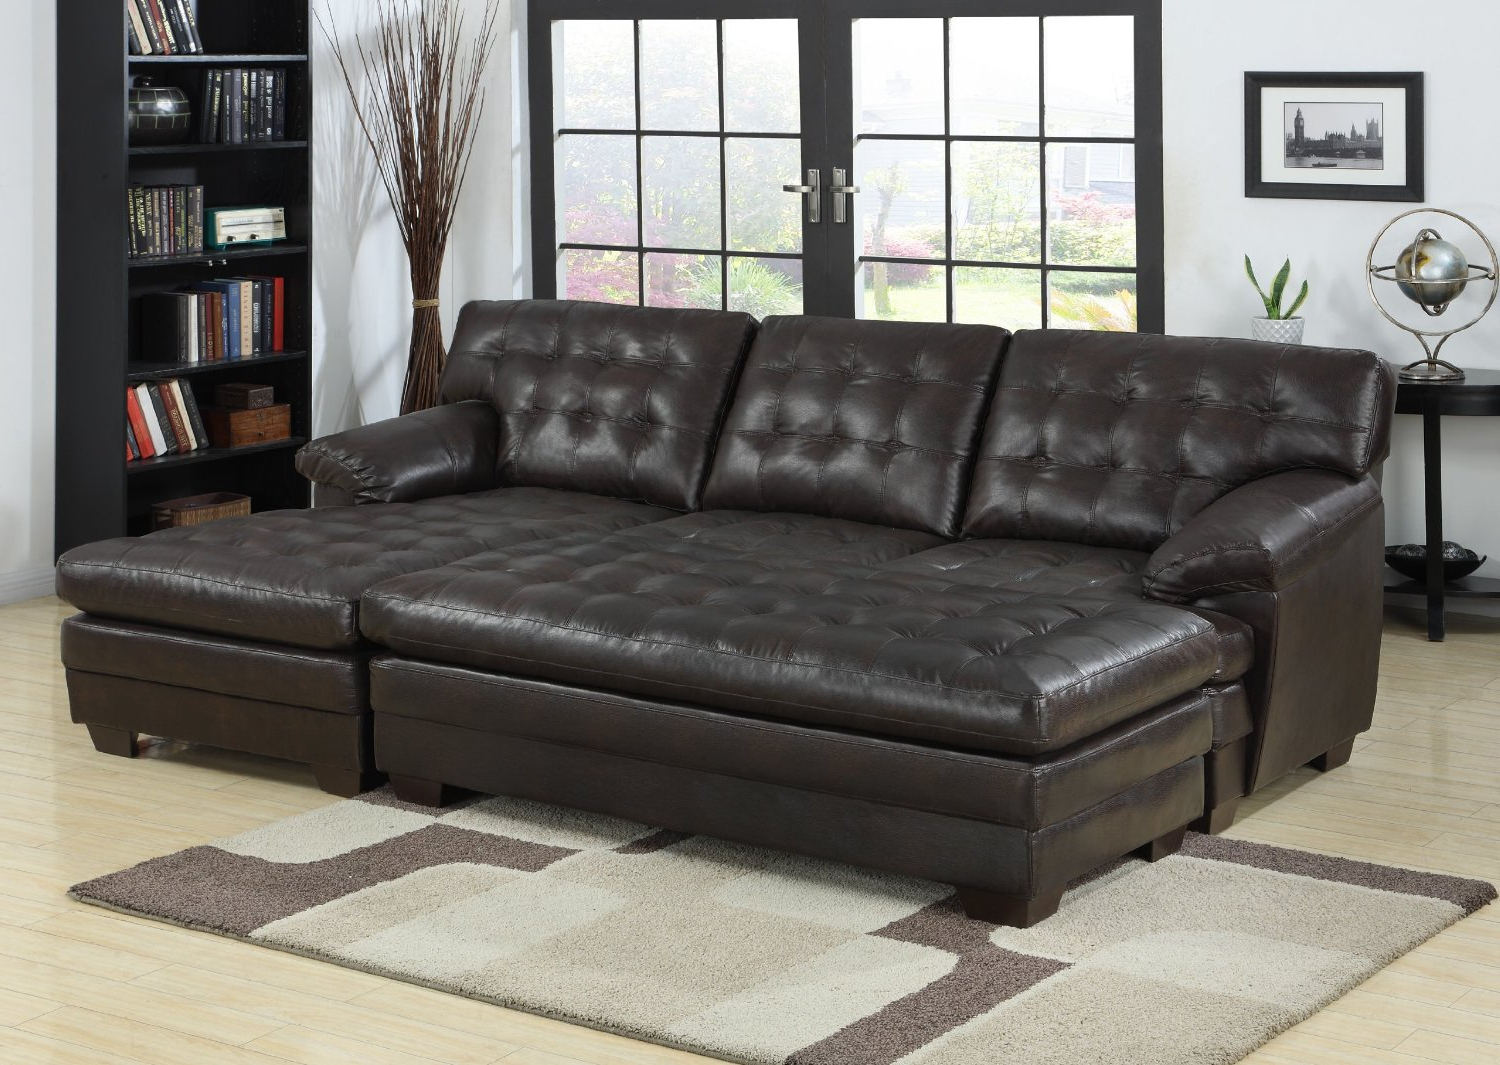 Copenhagen Reclining Sectional Sofas With Right Storage Chaise Within Well Liked 2 Piece Sectional Sofa With Chaise Design – Homesfeed (View 12 of 20)